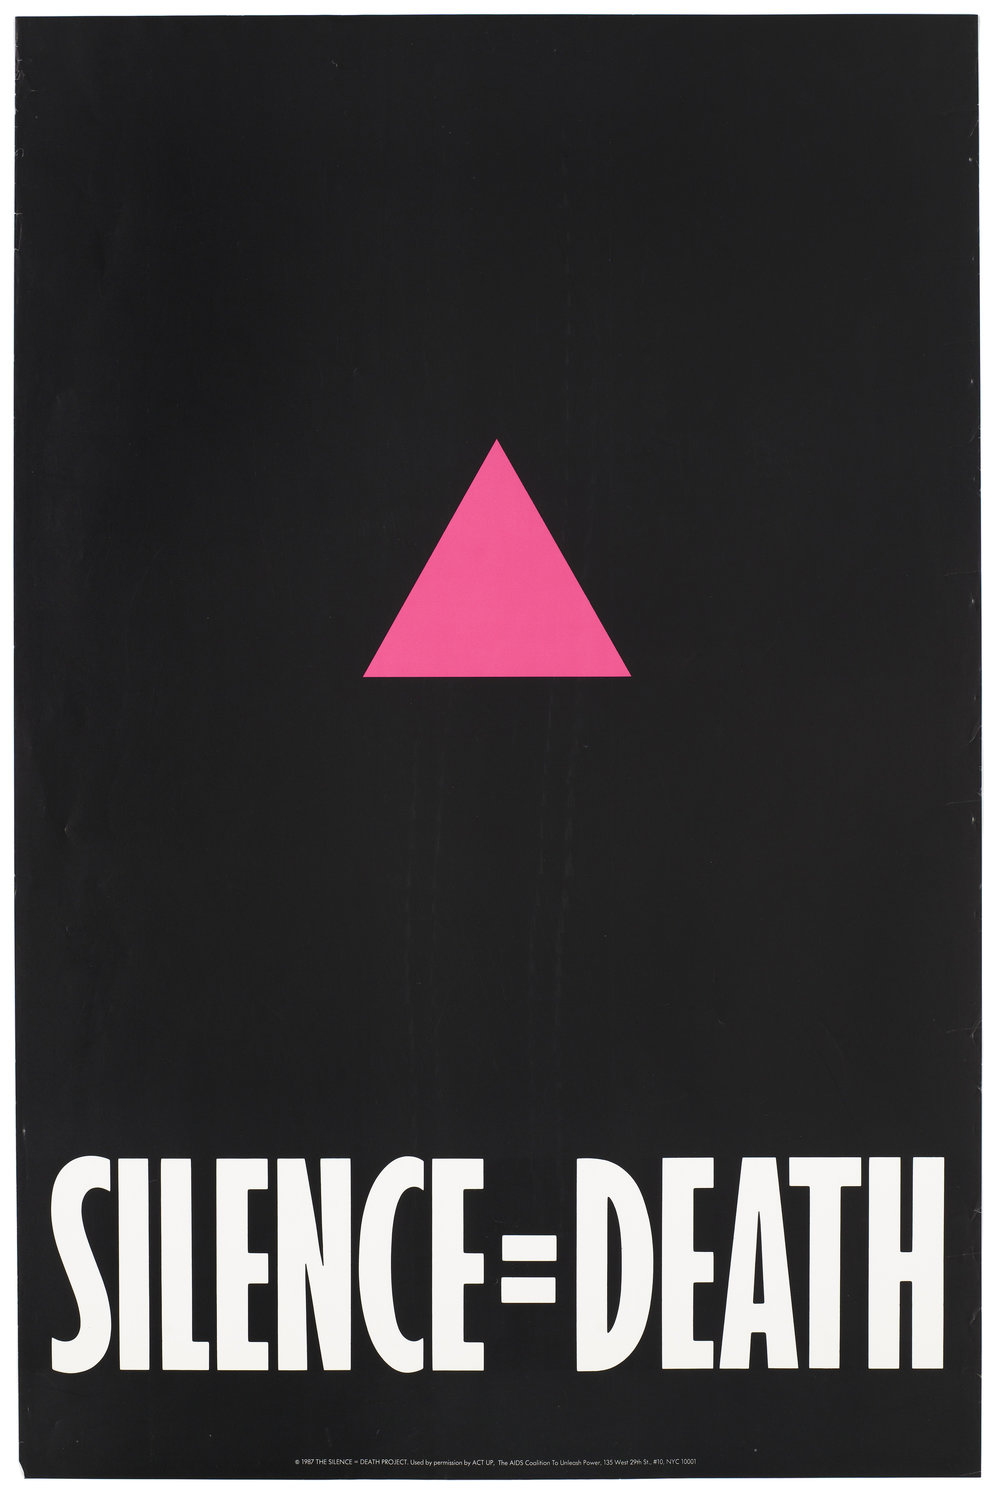 The Silence = Death poster displayed a powerful slogan that served as a call to action for individuals to join ACT UP. When it is most effective, ACT UP draws on the emotions of its activist members to achieve major public health policy wins or to pull off successful direct-actions on behalf of people living with HIV/AIDS. Source : Silence = Death Project/ACT UP/Fair Use